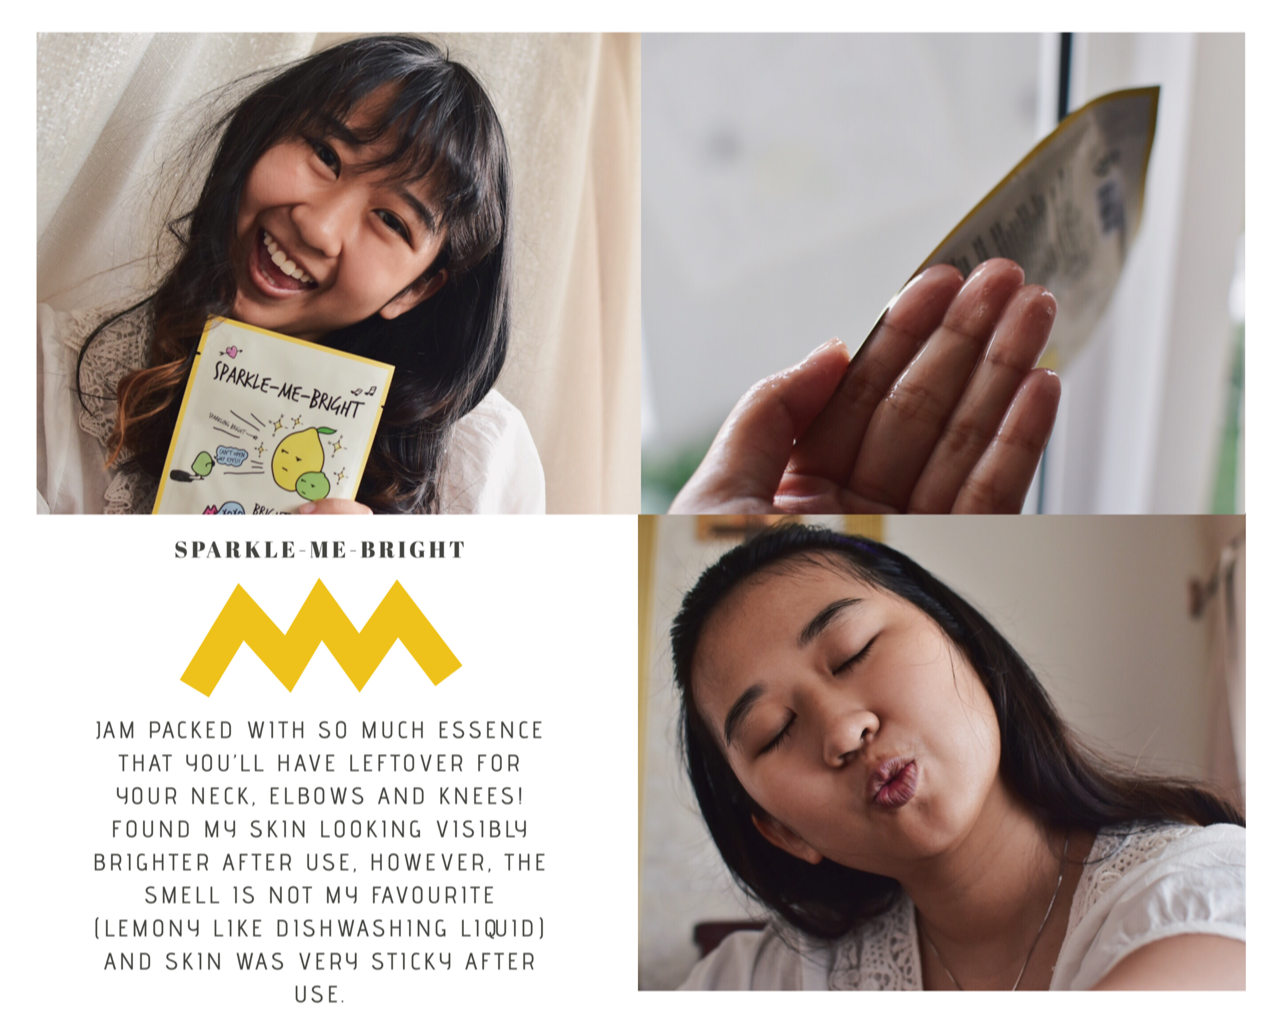 brightening sheet mask sparkle-me bright althea korea